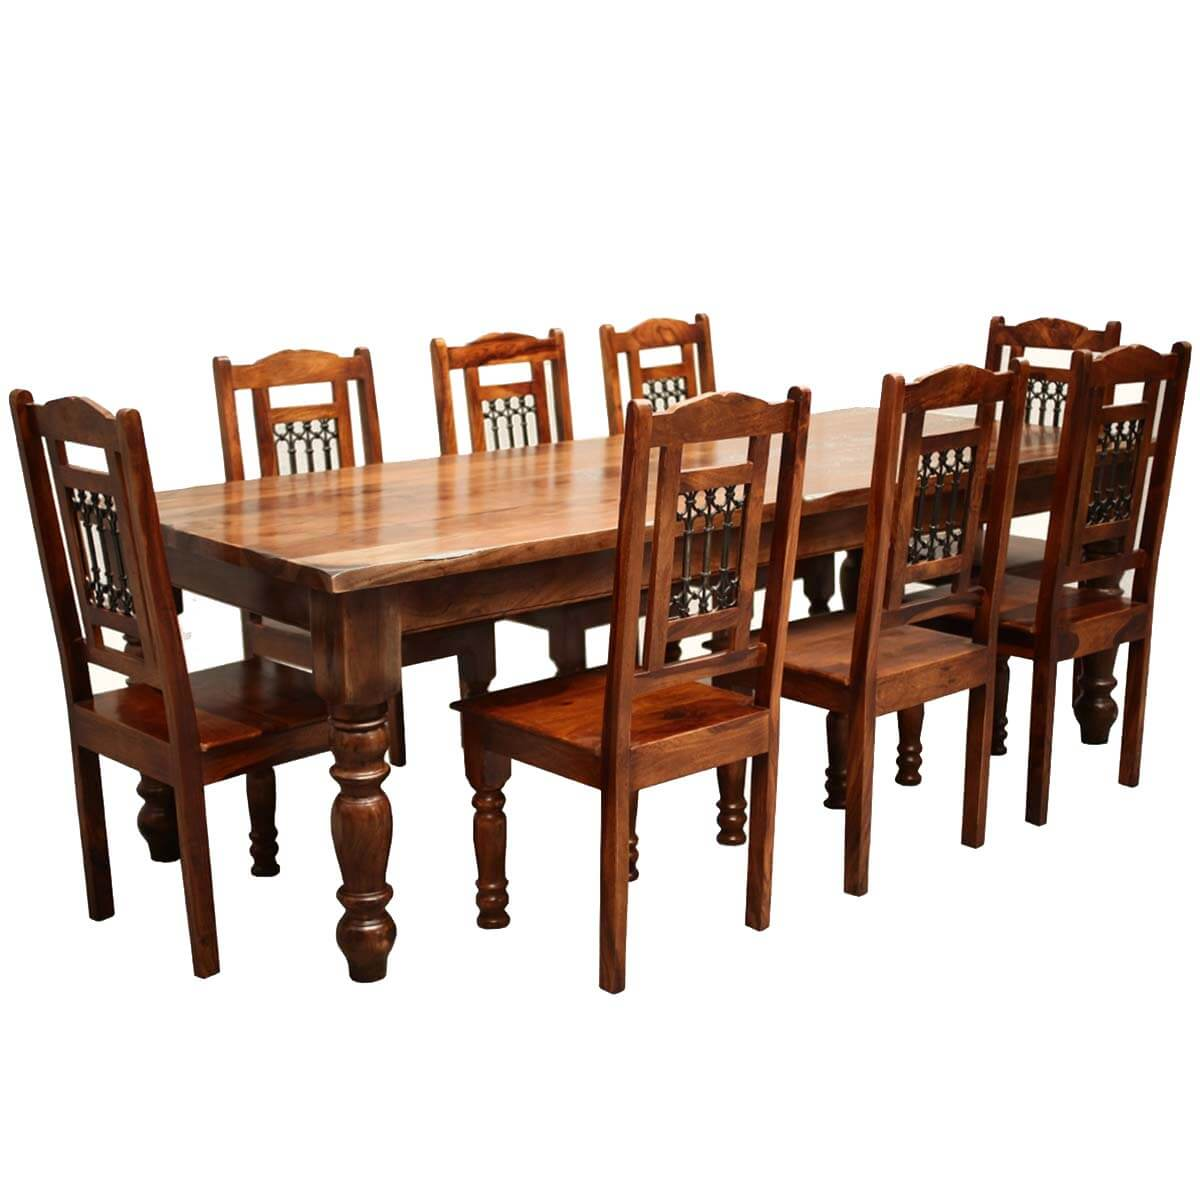 Rustic furniture solid wood large dining table 8 chair set for 8 chair dining room table